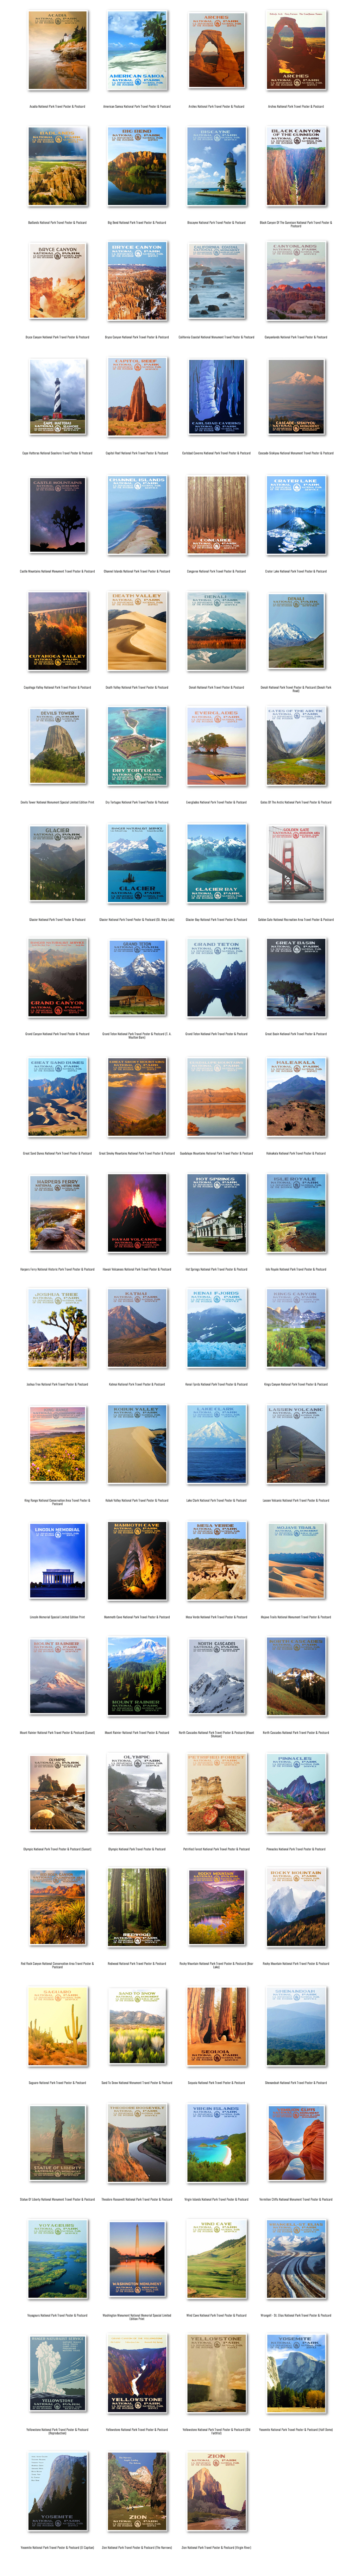 National Park Posters For Kickstarter